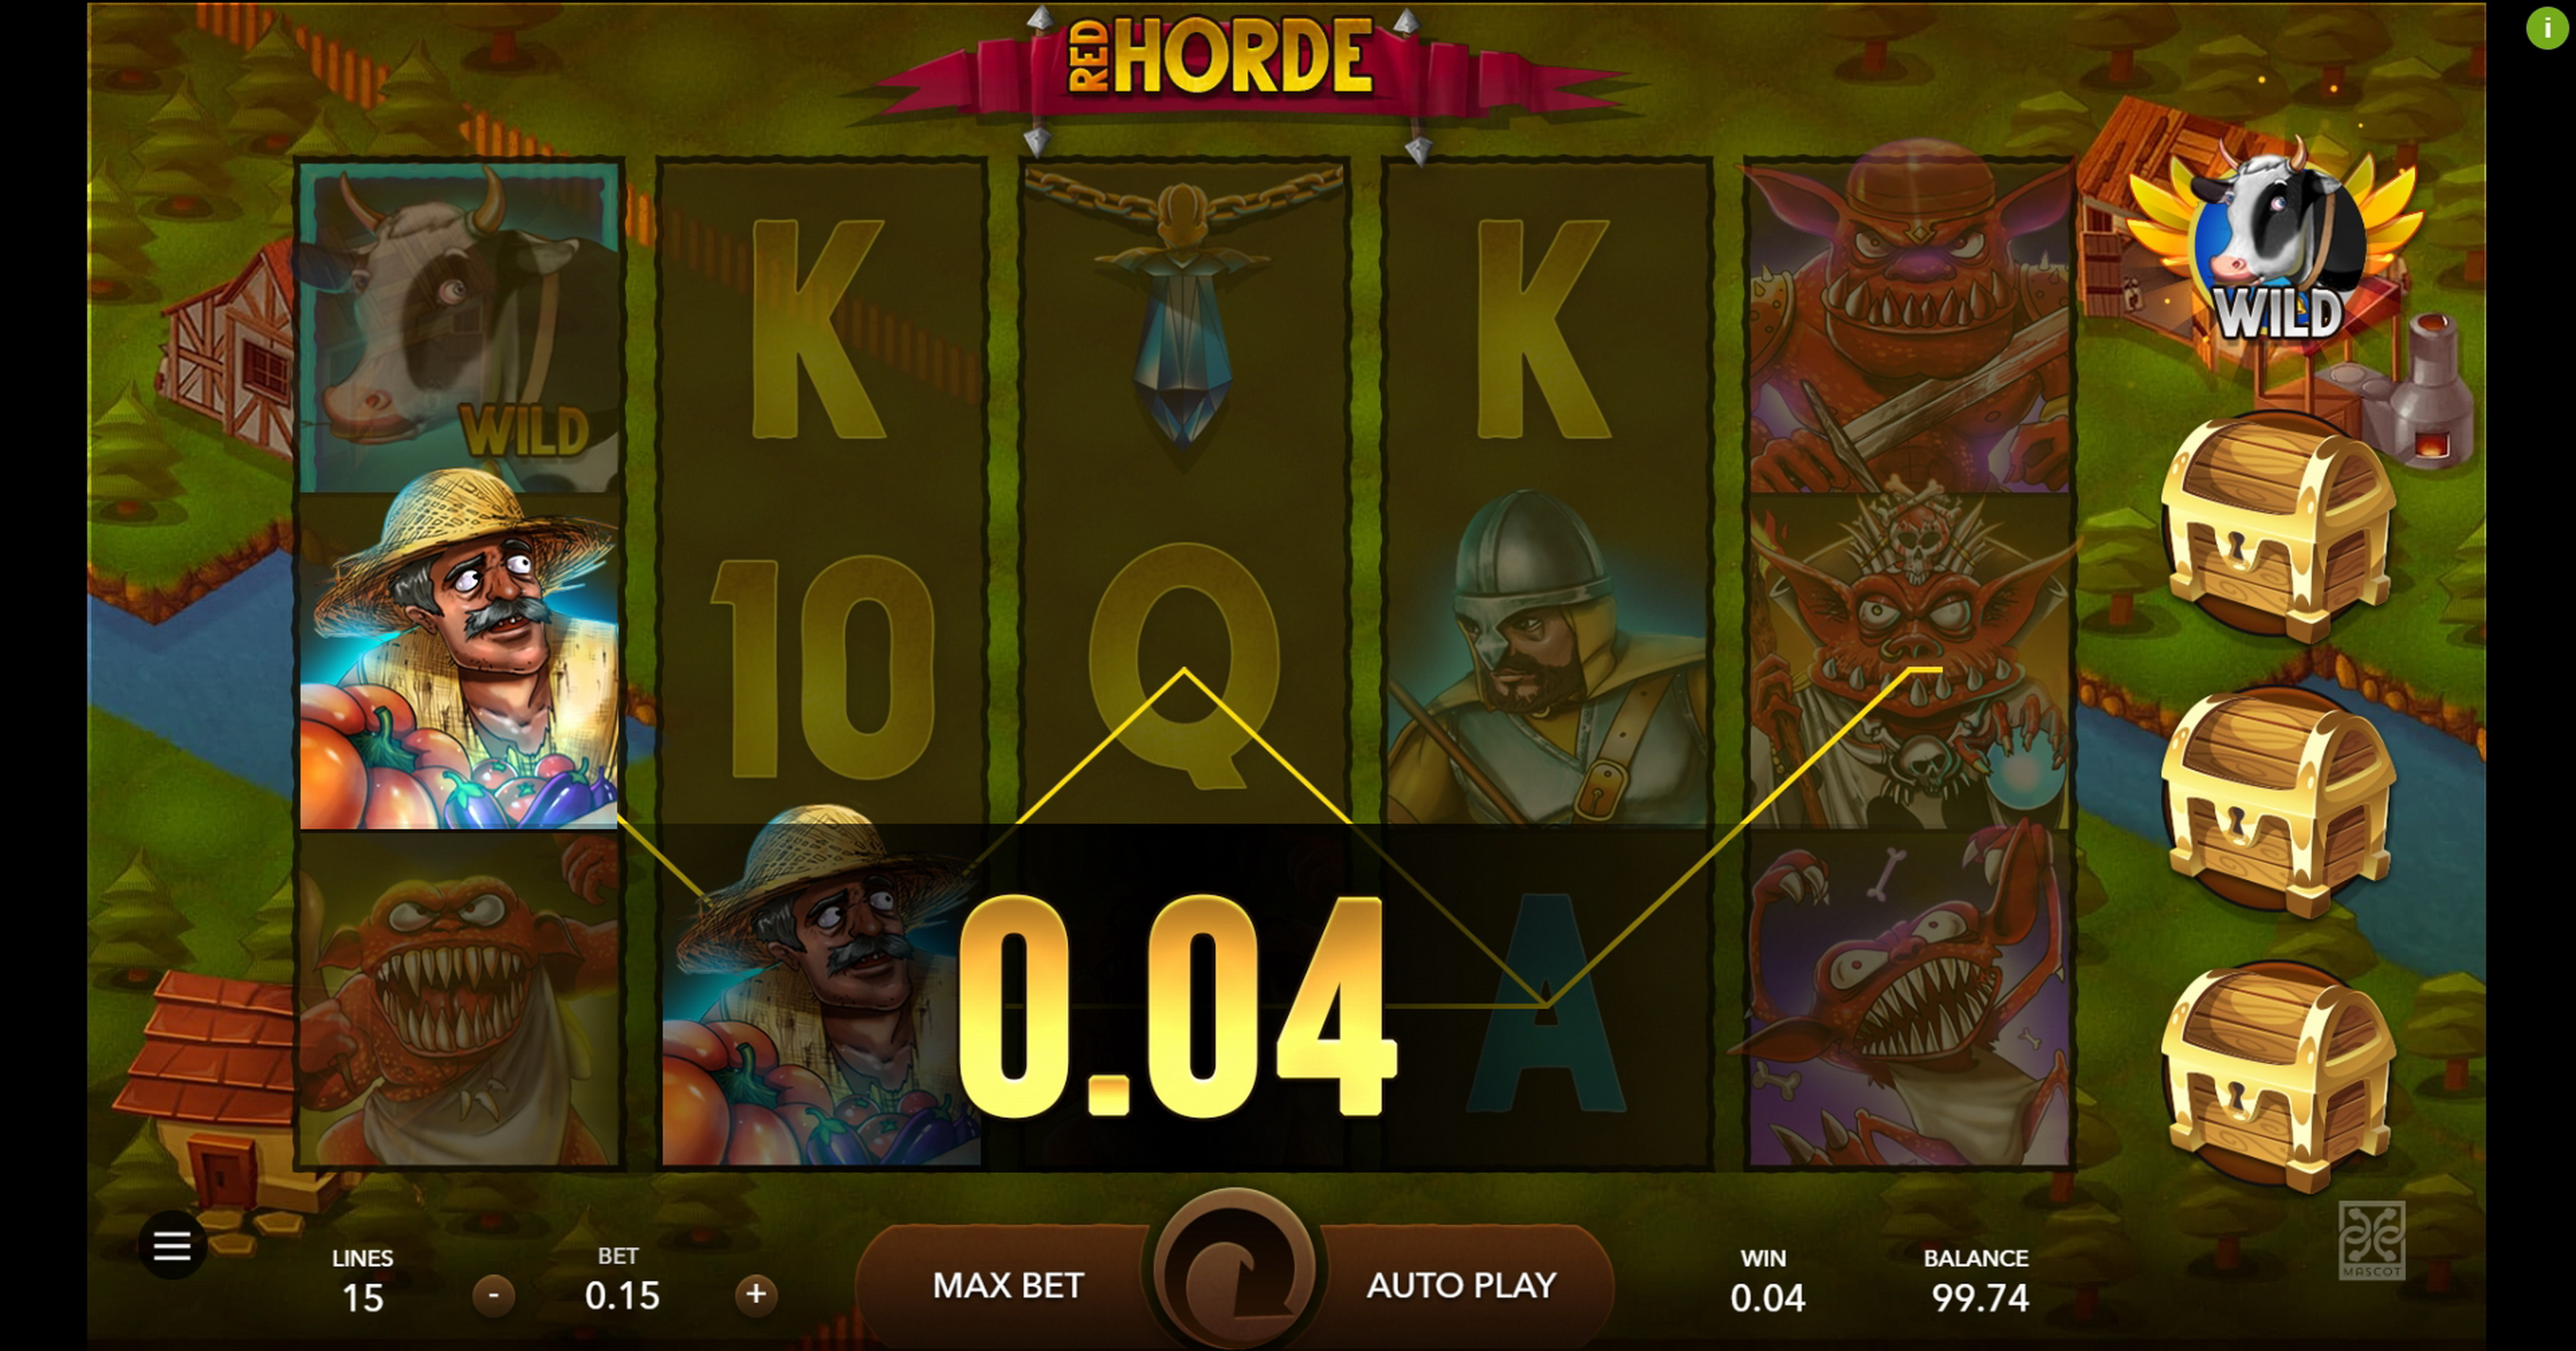 Win Money in Red Horde Free Slot Game by Mascot Gaming